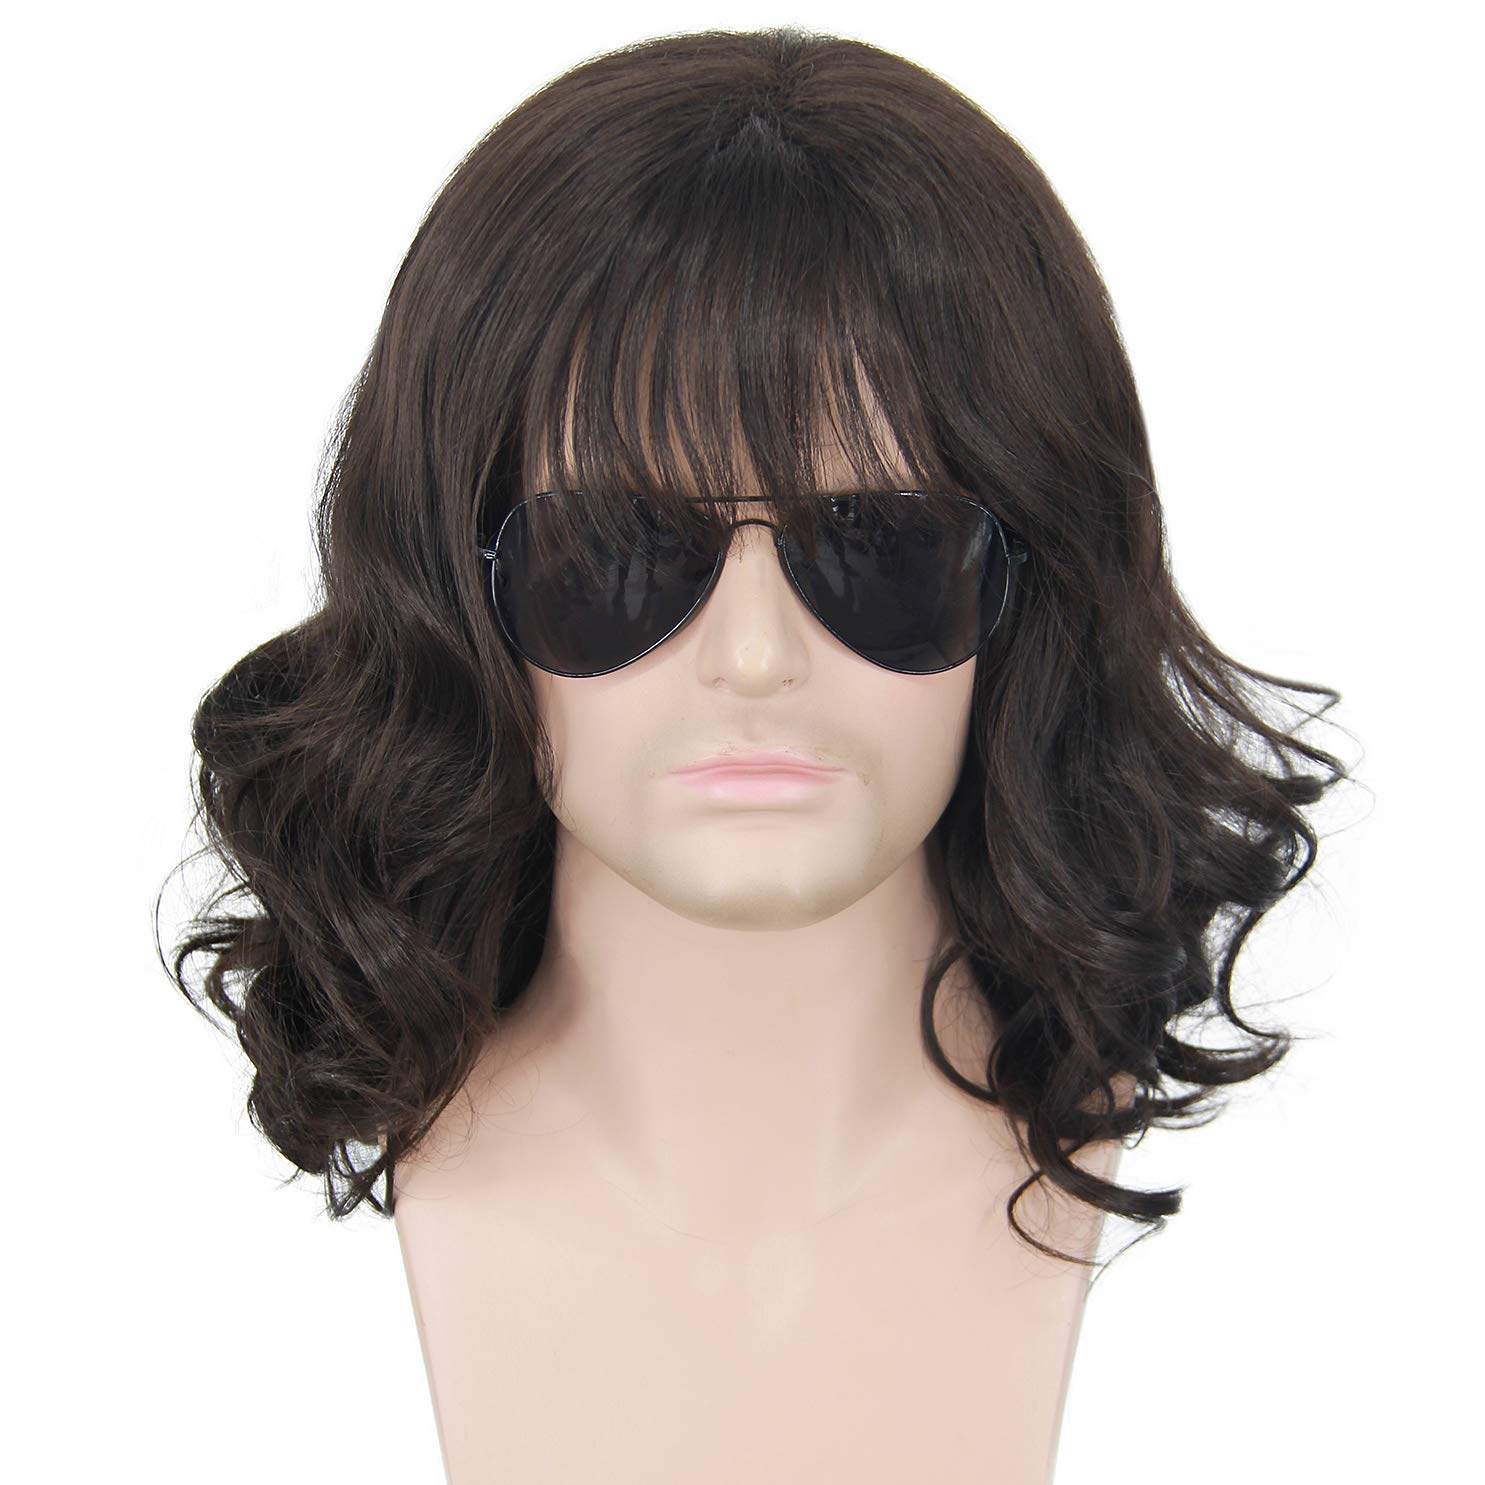 70s 80s Rocker Mullet Wig for Men Black Long Curly Hair Wigs Halloween Male Punk Heavy Metal Rock Star Cosplay Custume Anime Wig with Glasses 009